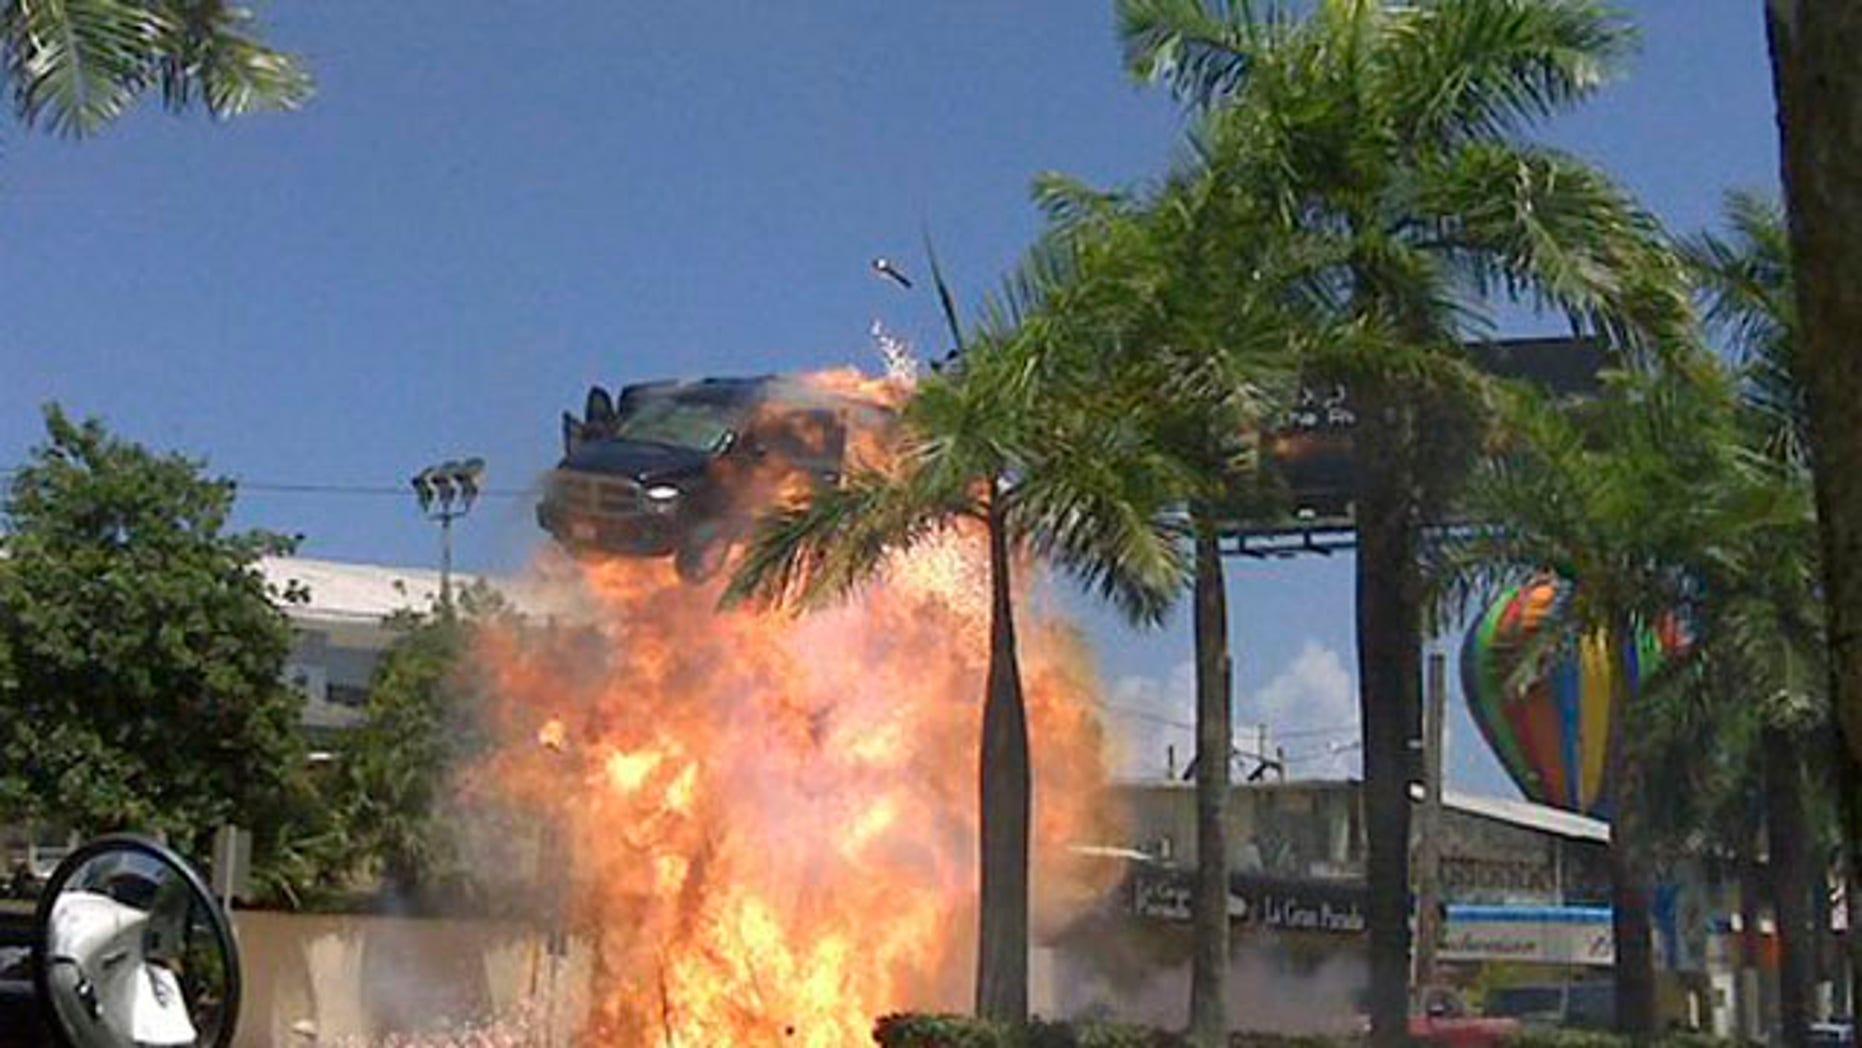 """In this photo taken Aug. 16, 2009 released by the Puerto Rico Film Commission,, a car is blown up during the filming of """"The Losers"""", directed by Sylvain White, in San Juan, Puerto Rico. The Caribbean island is increasingly a backdrop in American and European cinema, standing in for Baghdad war zones, Brazilian slums, or cookie-cutter American suburbs. (AP Photo/Puerto Rico Film Commission)"""